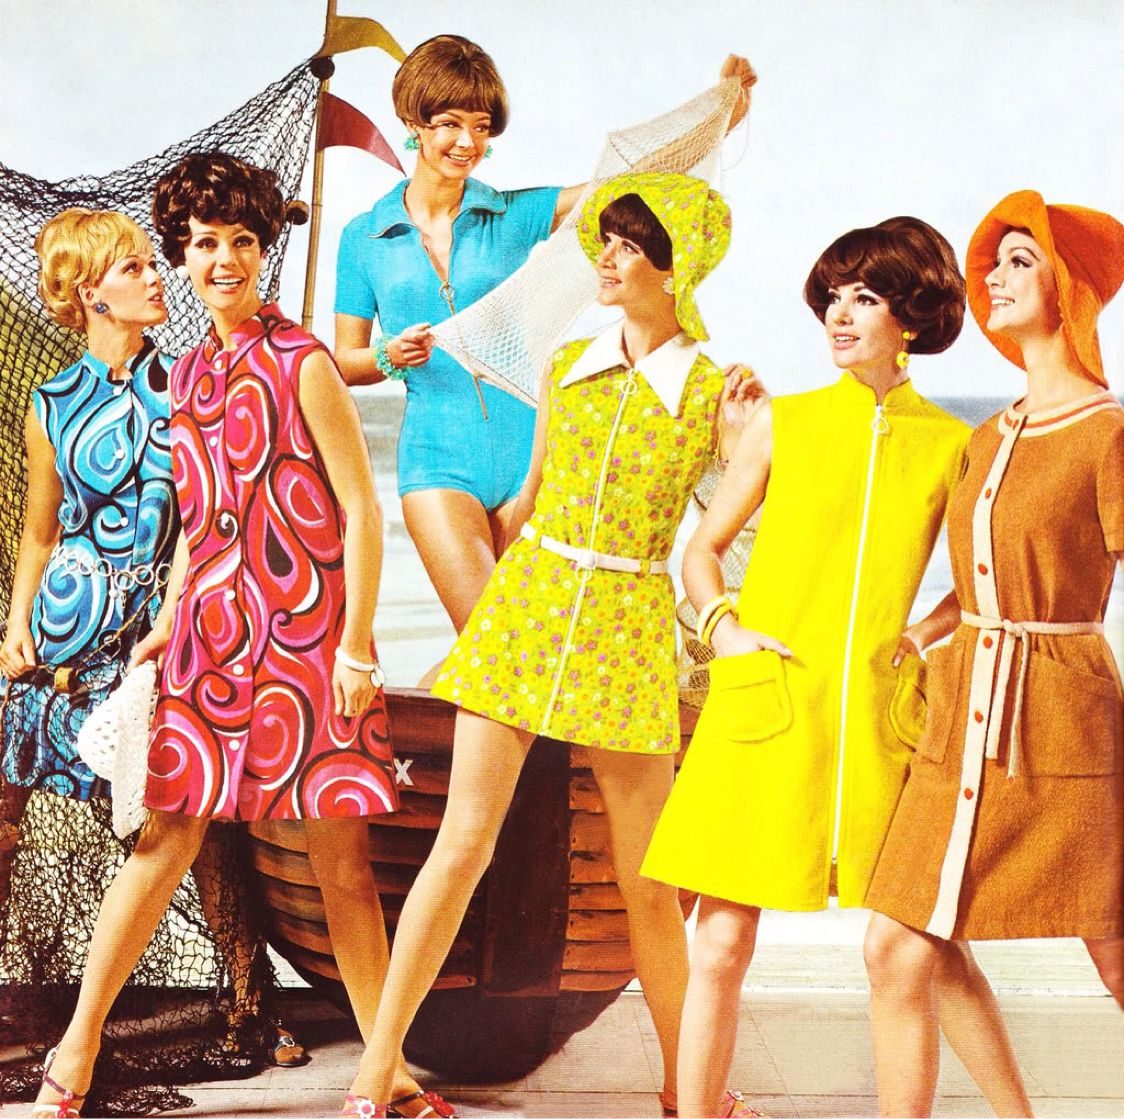 Vintage Look Image Result For Bright Vibrant Clothing 70's Vintage Look | 1960s Fashion, 60s Fashion, Retro Fashion